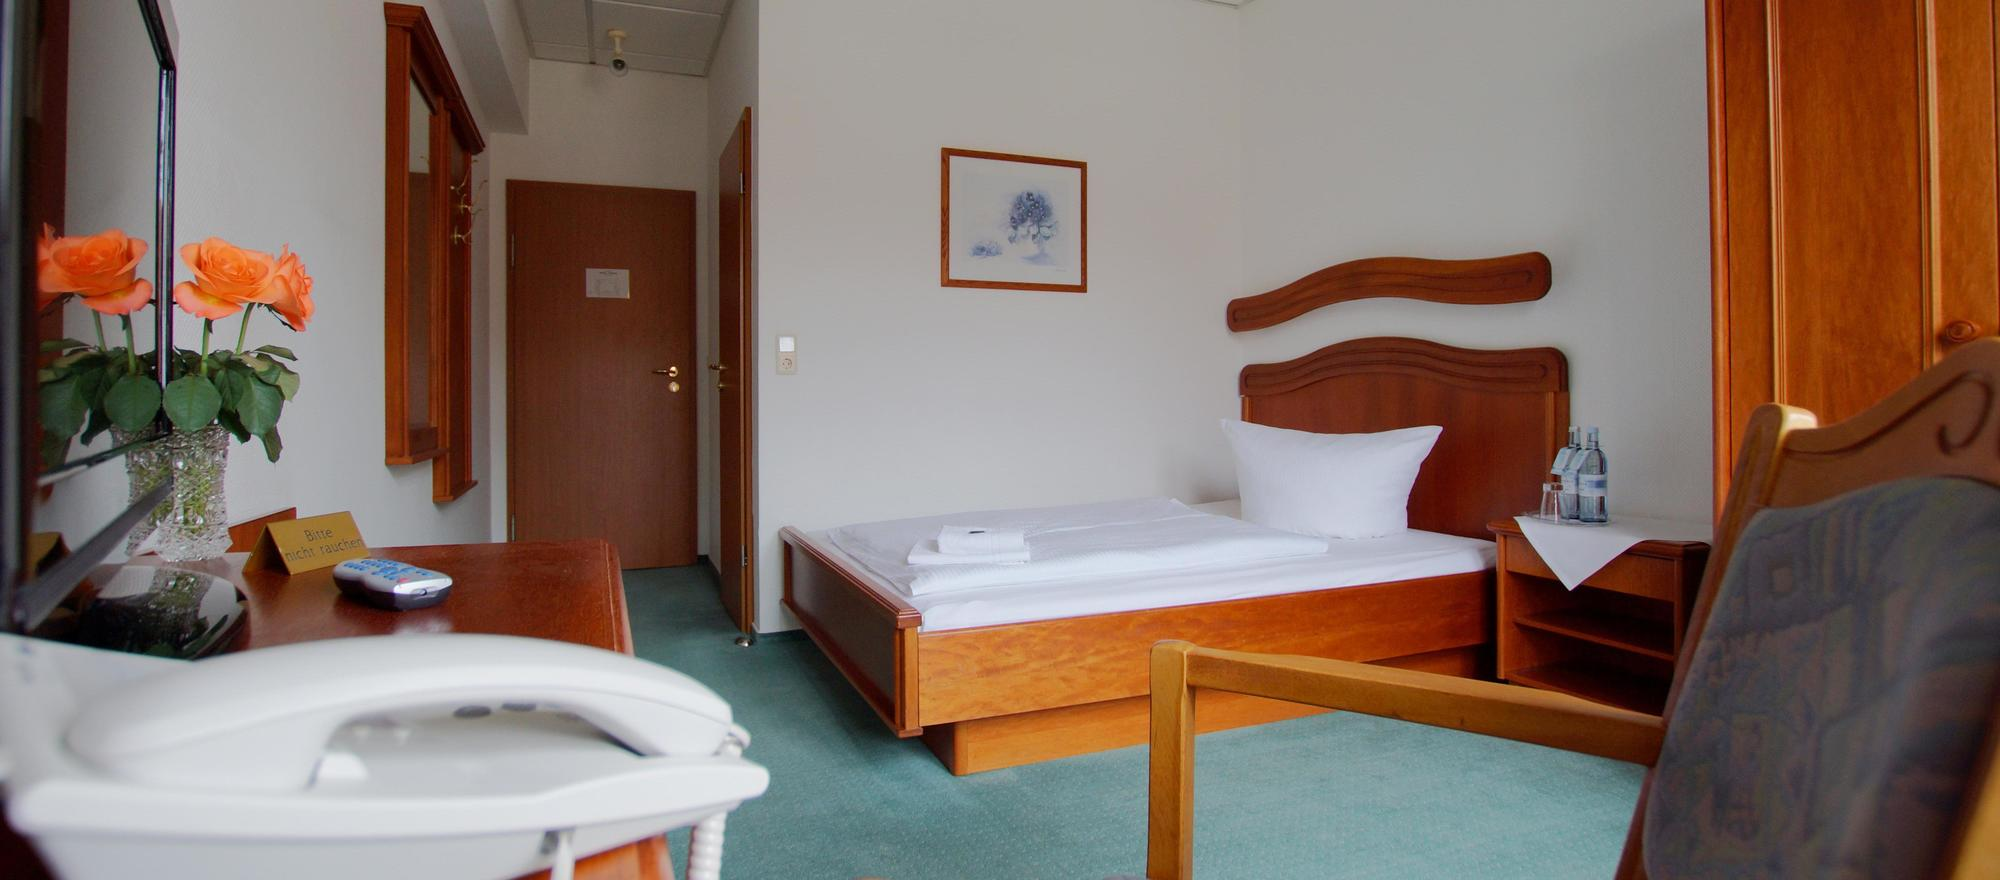 Single room in the Ringhotel Dreiwasser in Sternberg